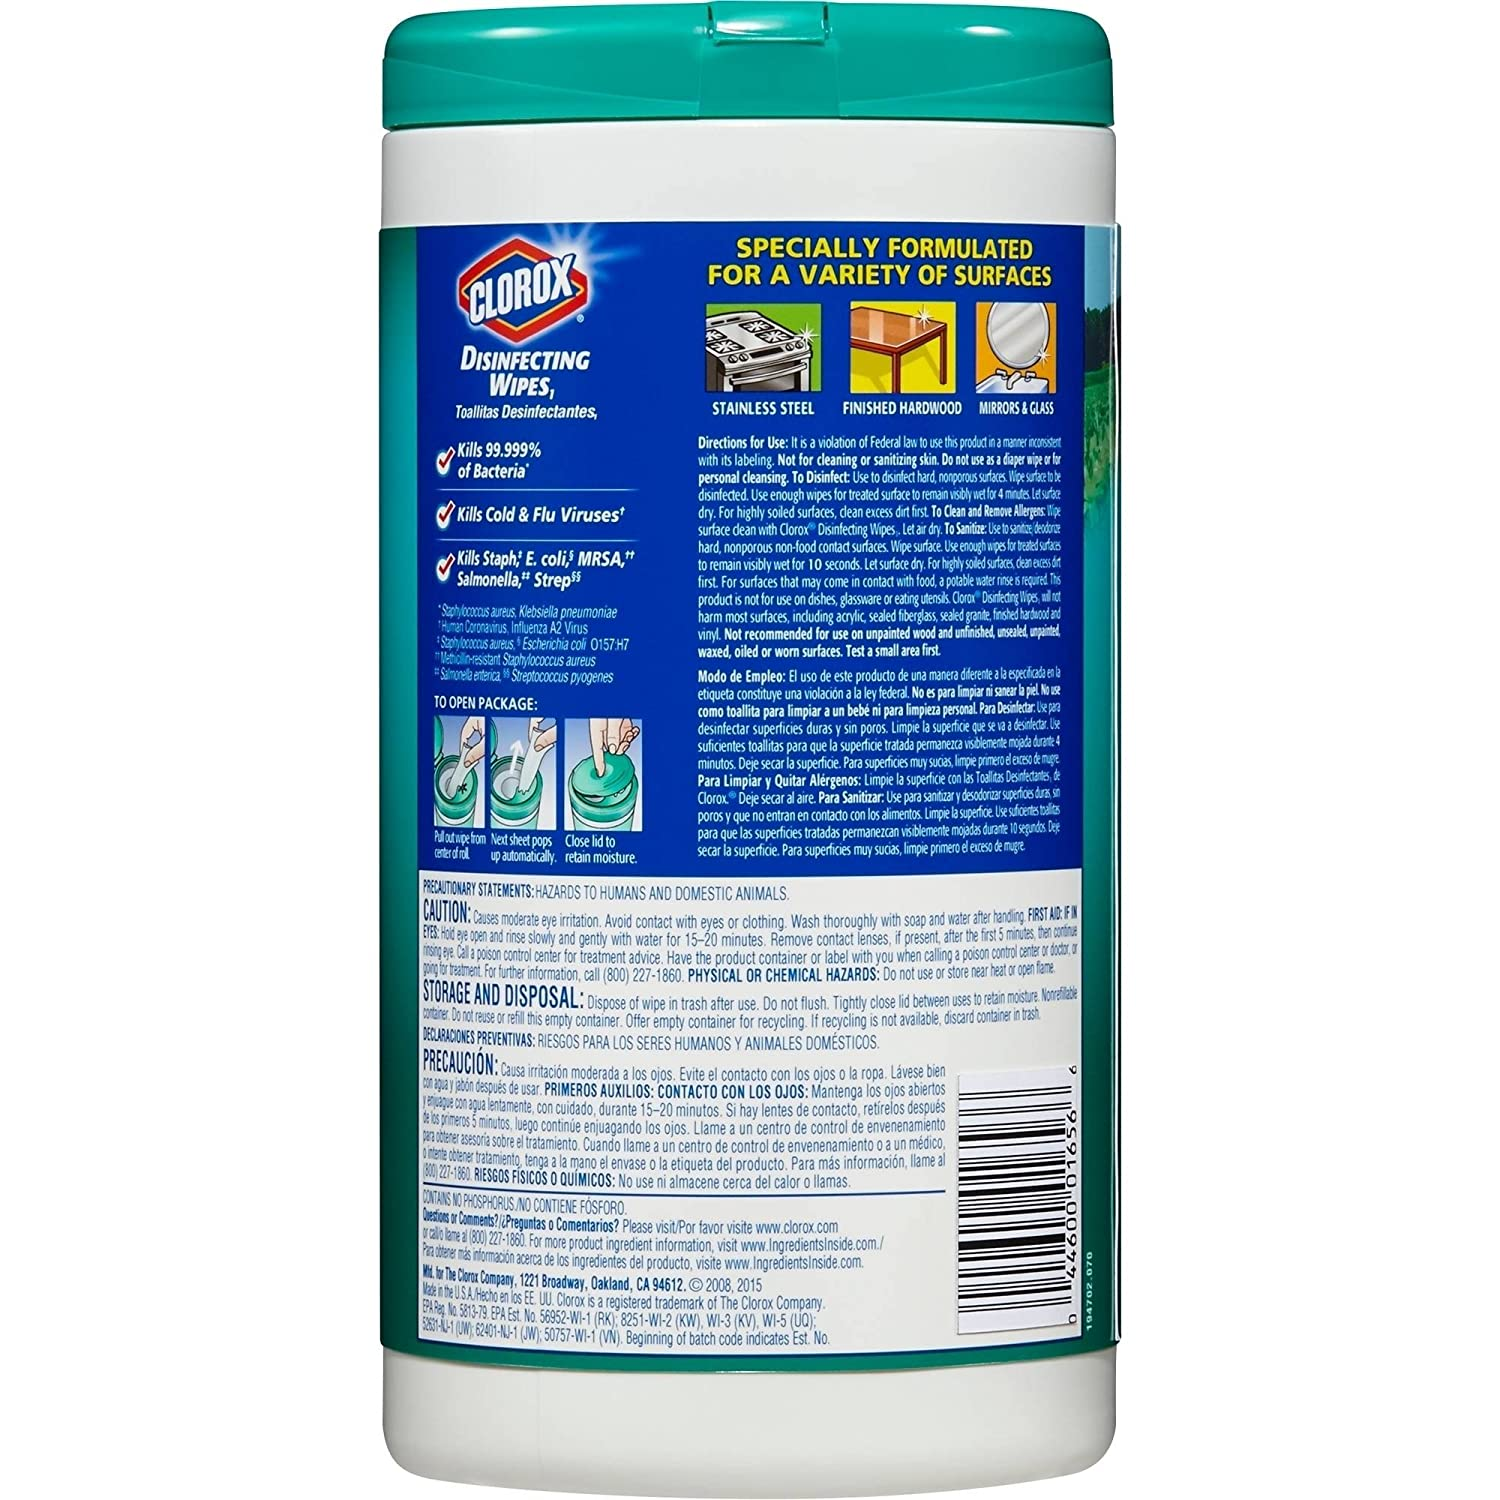 Amazon.com: Disinfecting Wipes, 7 X 8, Fresh Scent, 75/canister: Health & Personal Care